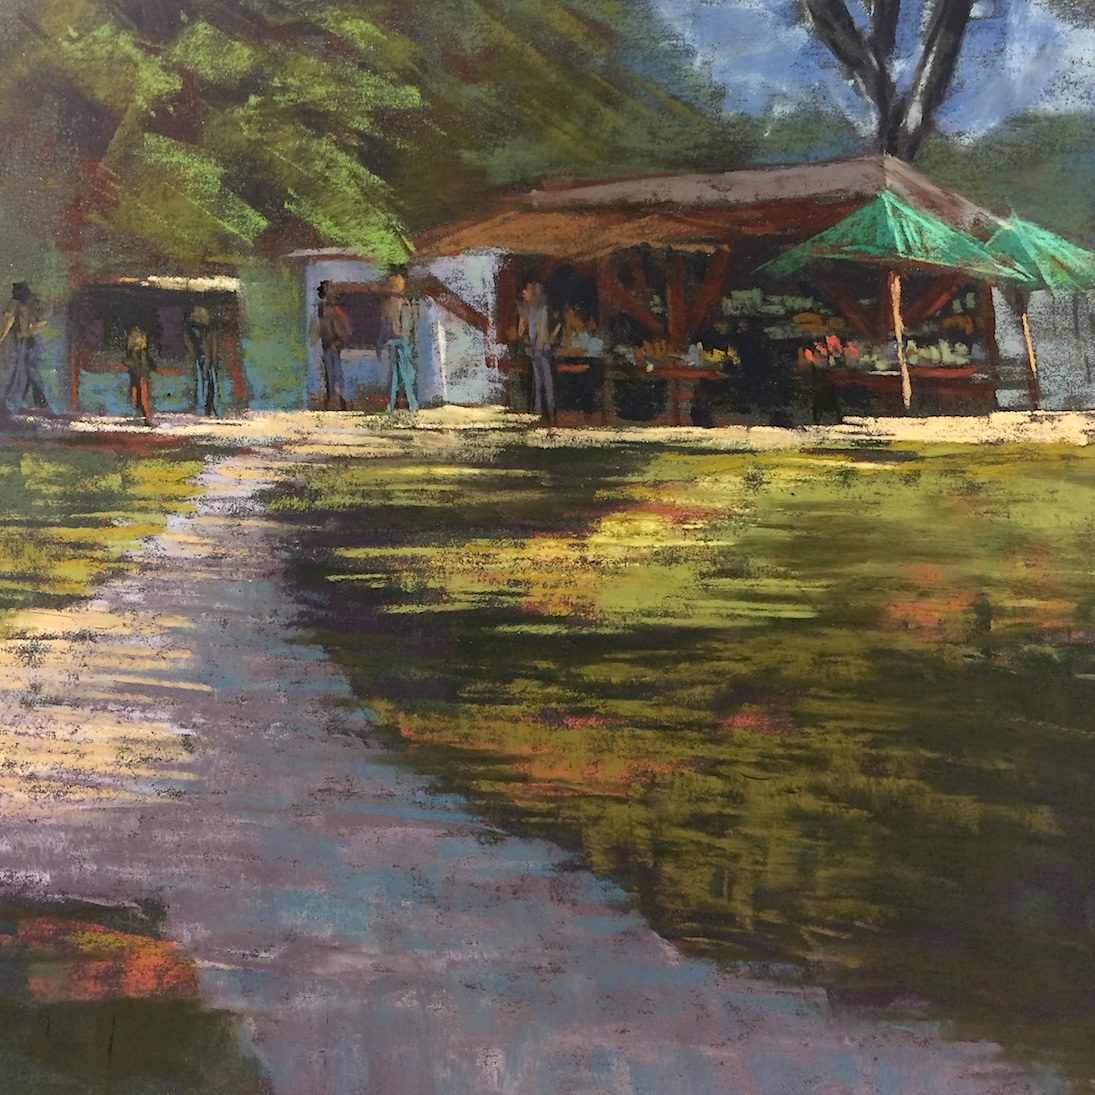 Pleinair at Land's Sake Farm. Weston